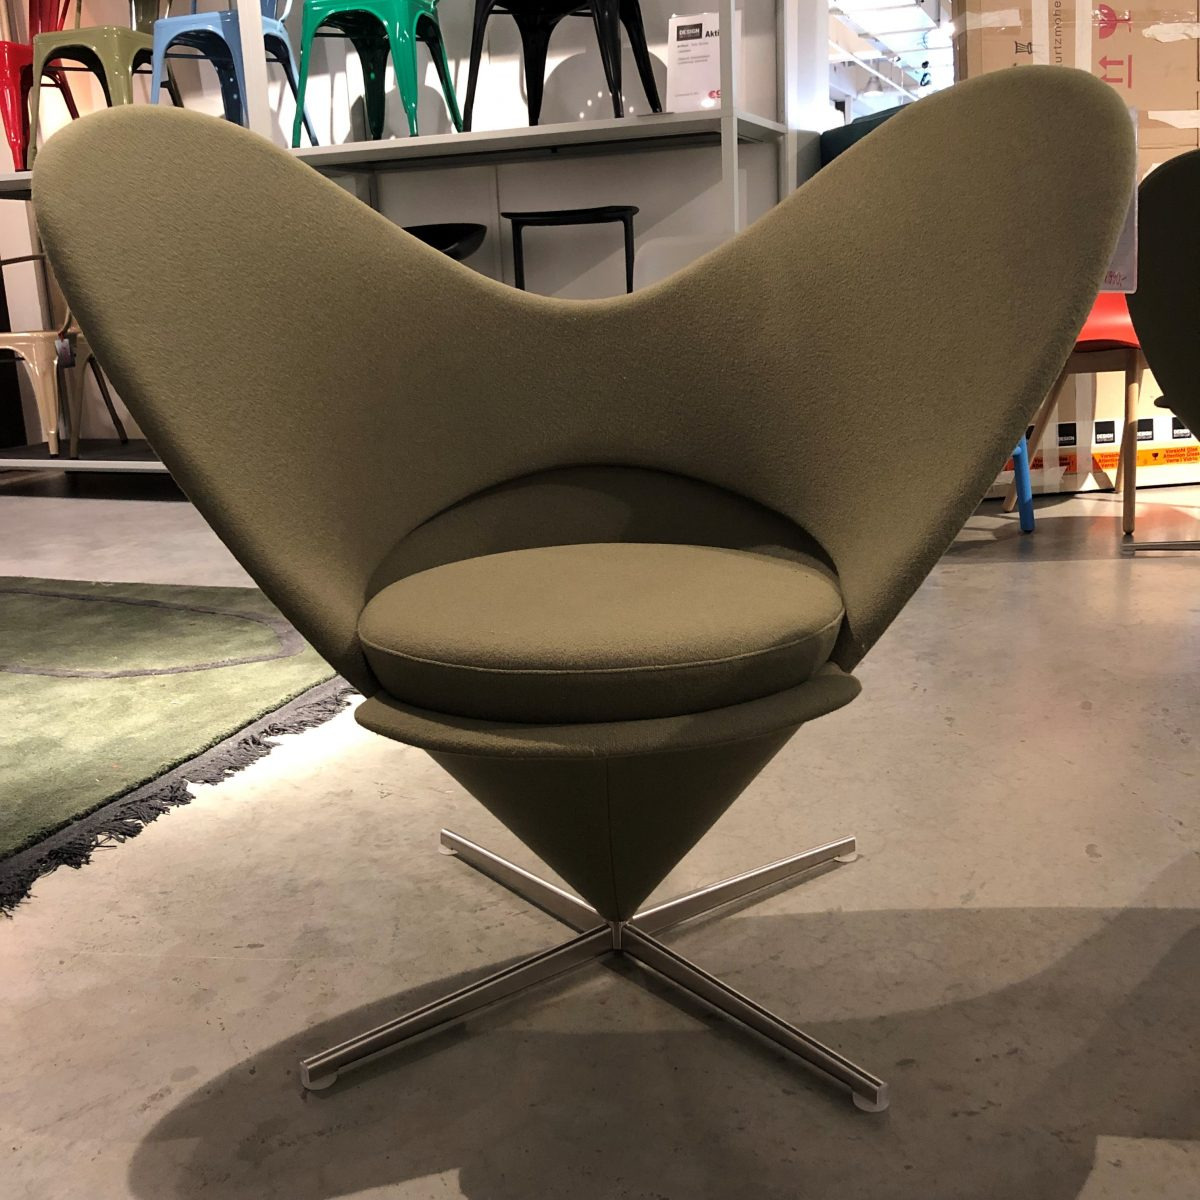 mathes-outlet-produkte-lovesessel-vitra